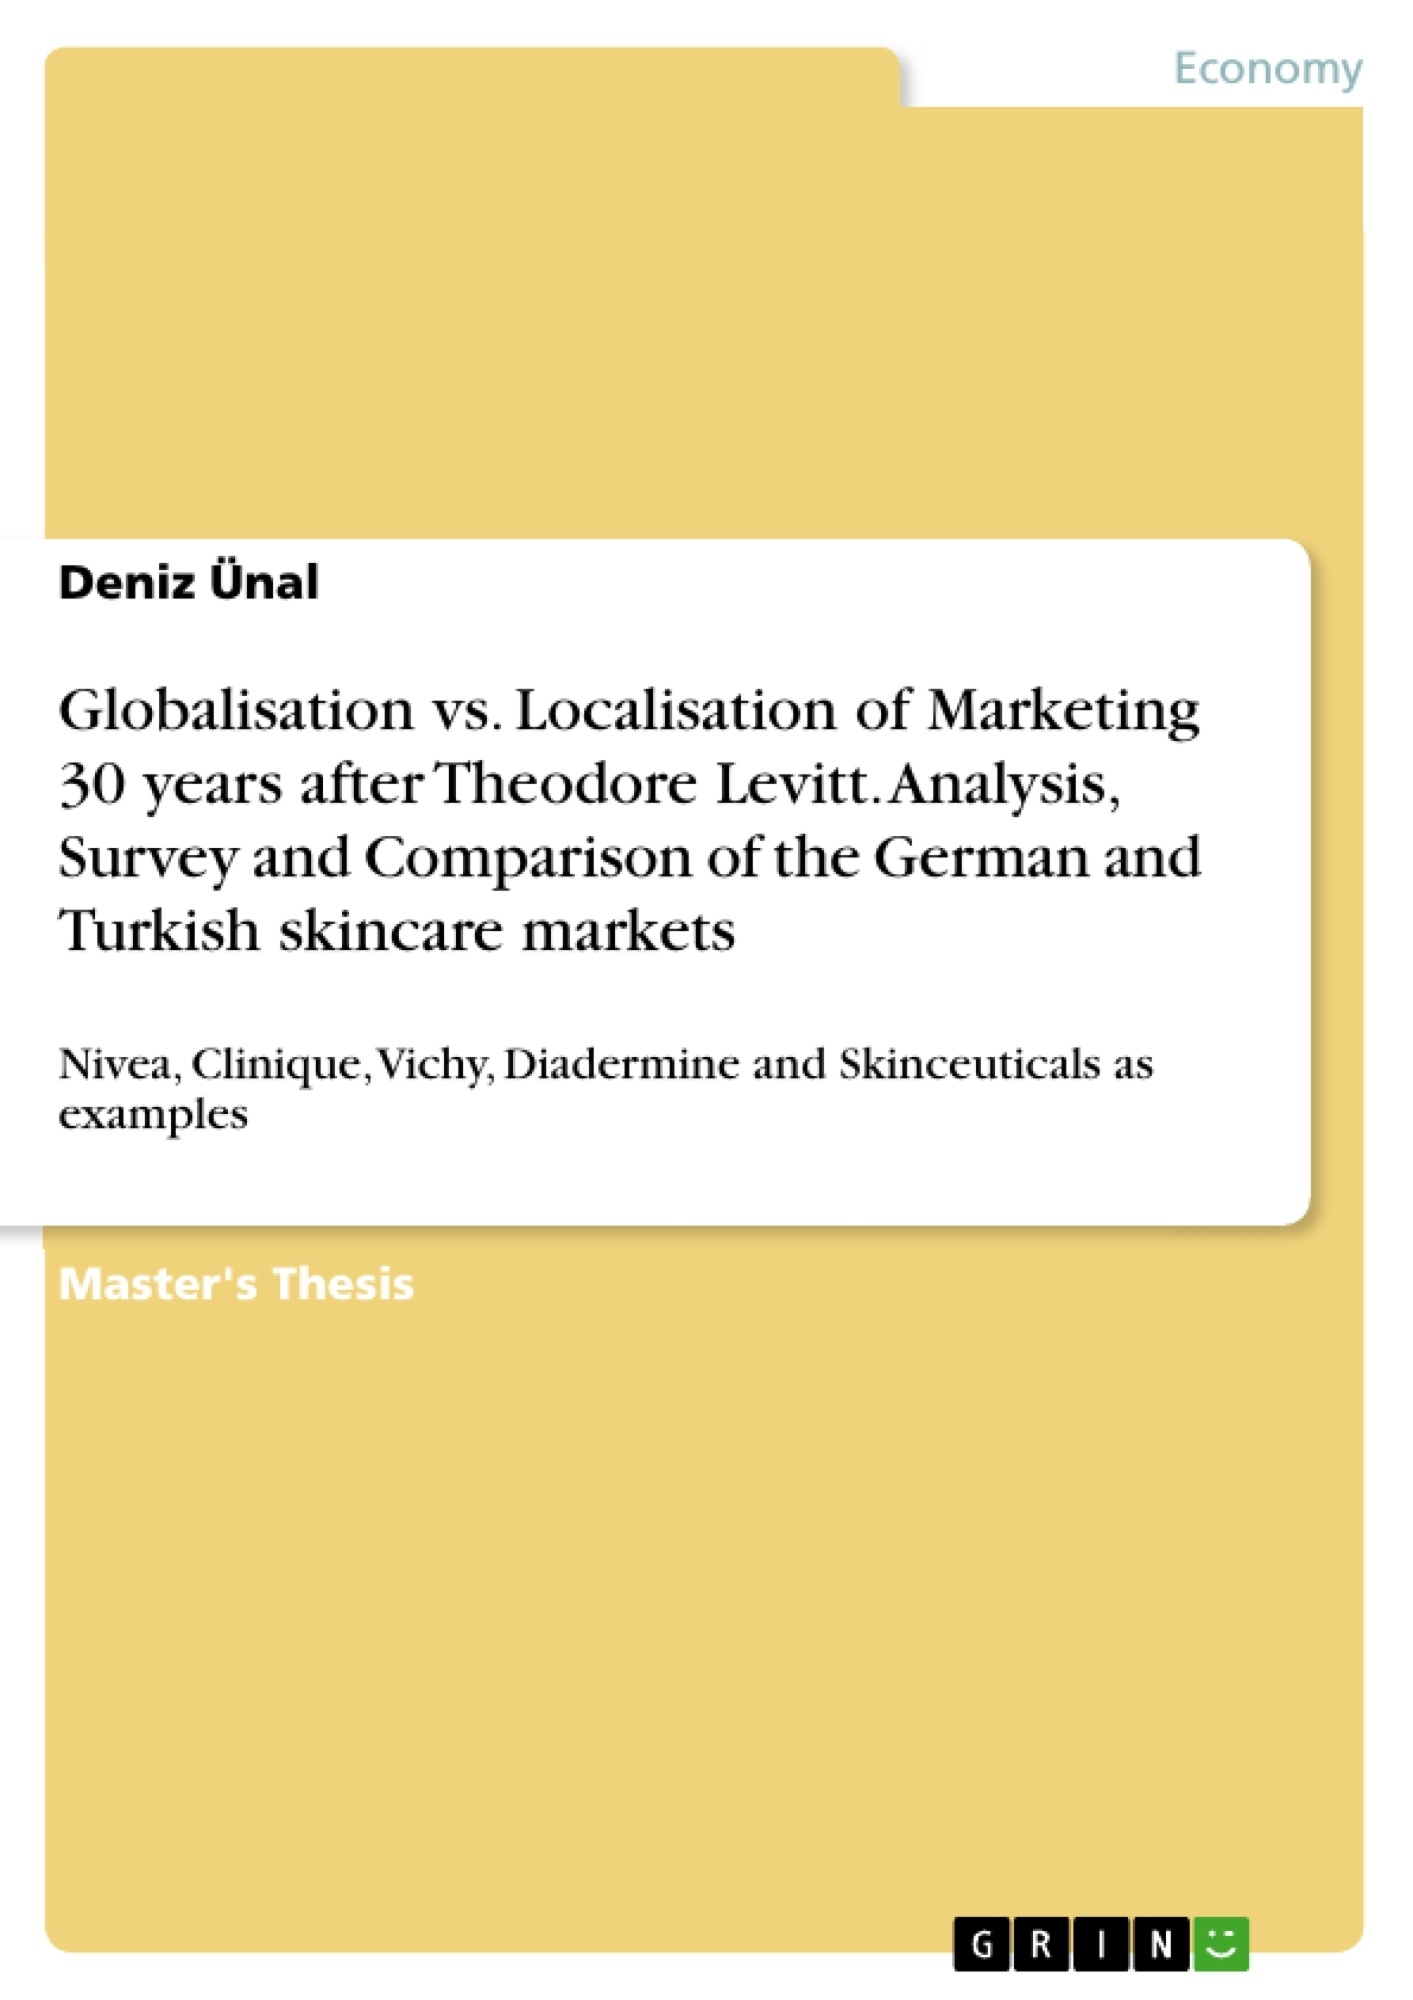 Title: Globalisation vs. Localisation of Marketing 30 years after Theodore Levitt. Analysis, Survey and Comparison of the German and Turkish skincare markets